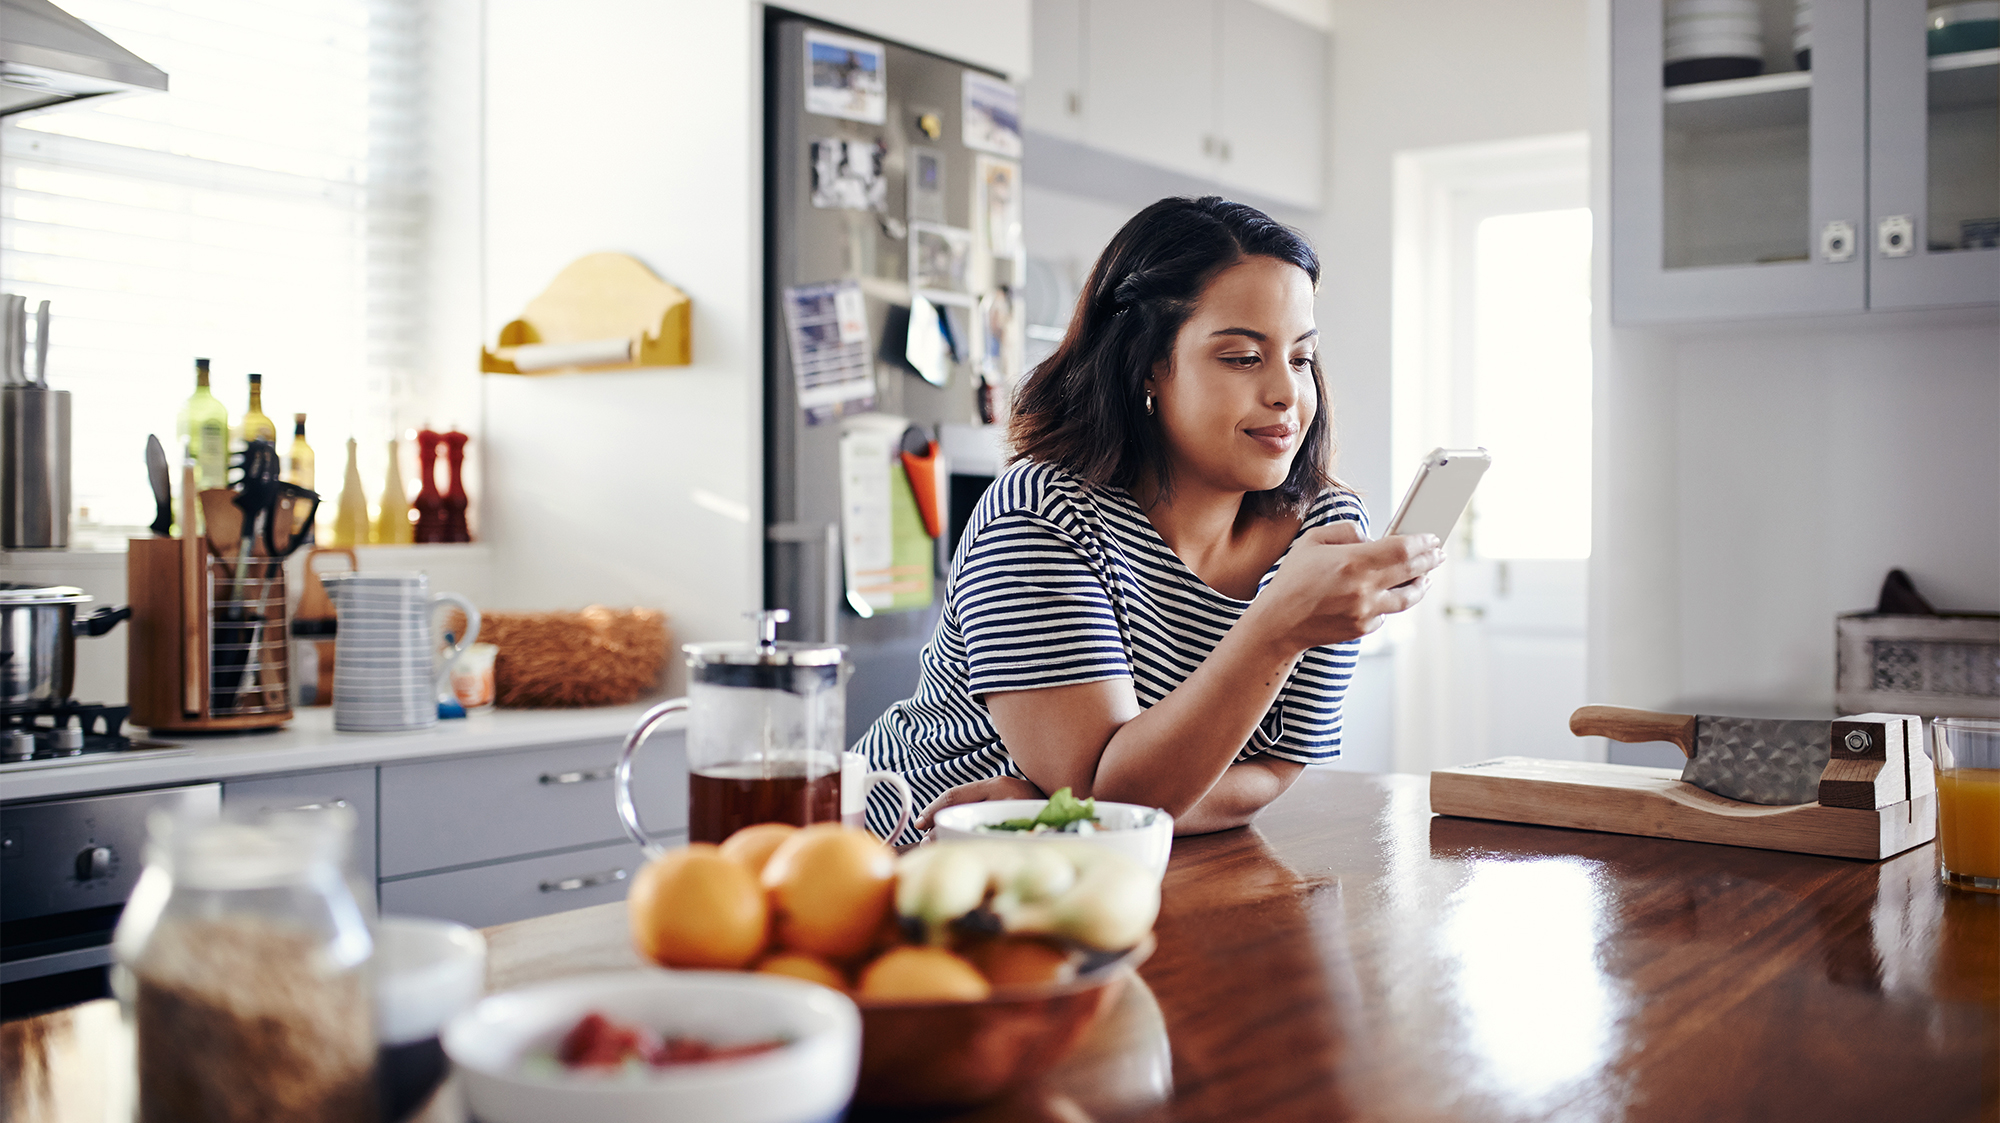 Girl In Kitchen Using Credit Insights on mobile phone